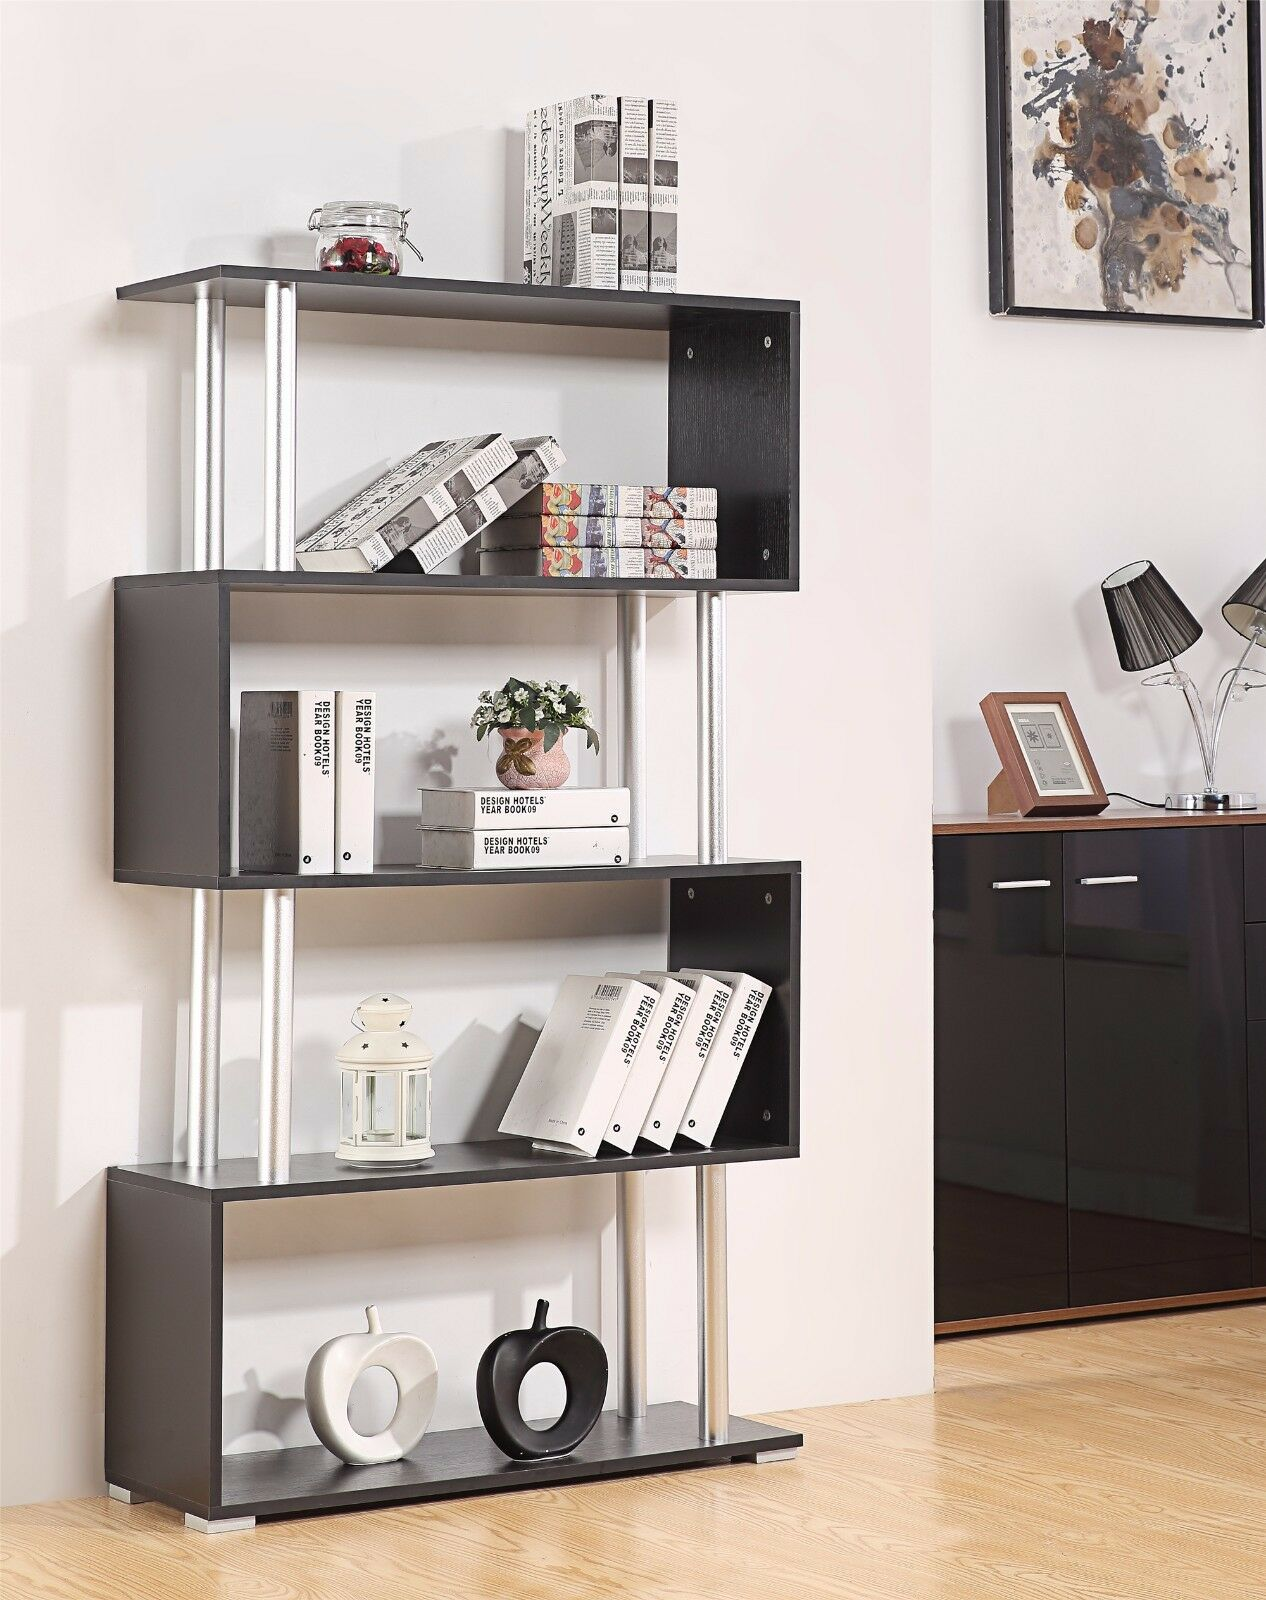 Ossotto Xl S Shape Storage Unit Bookshelf Bookcase Home Or Office Furniture